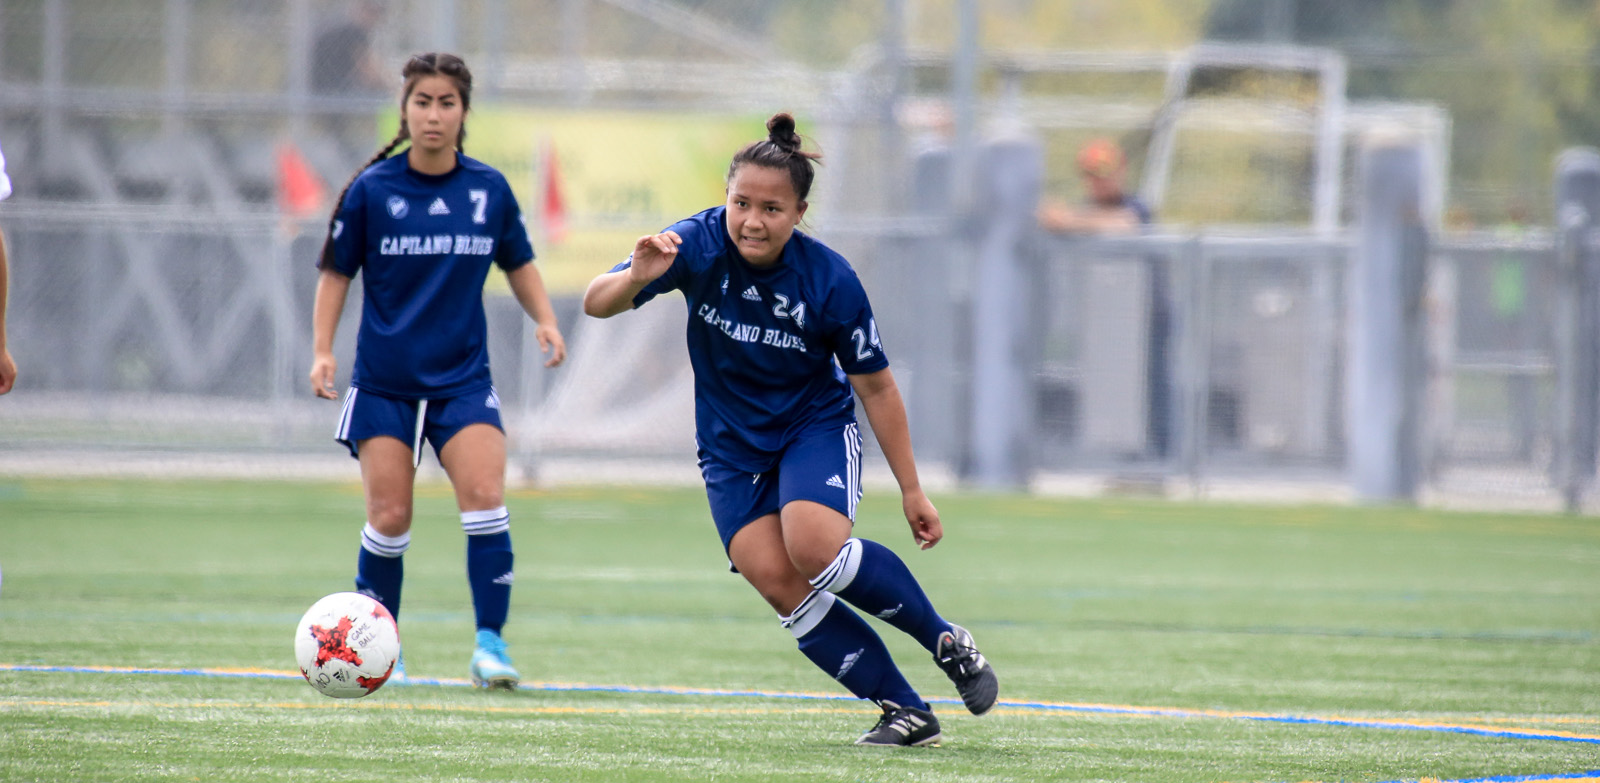 Claire Ye (left) and Adrianna Babinski. Photo Paul Yates, Vancouver Sports Pictures